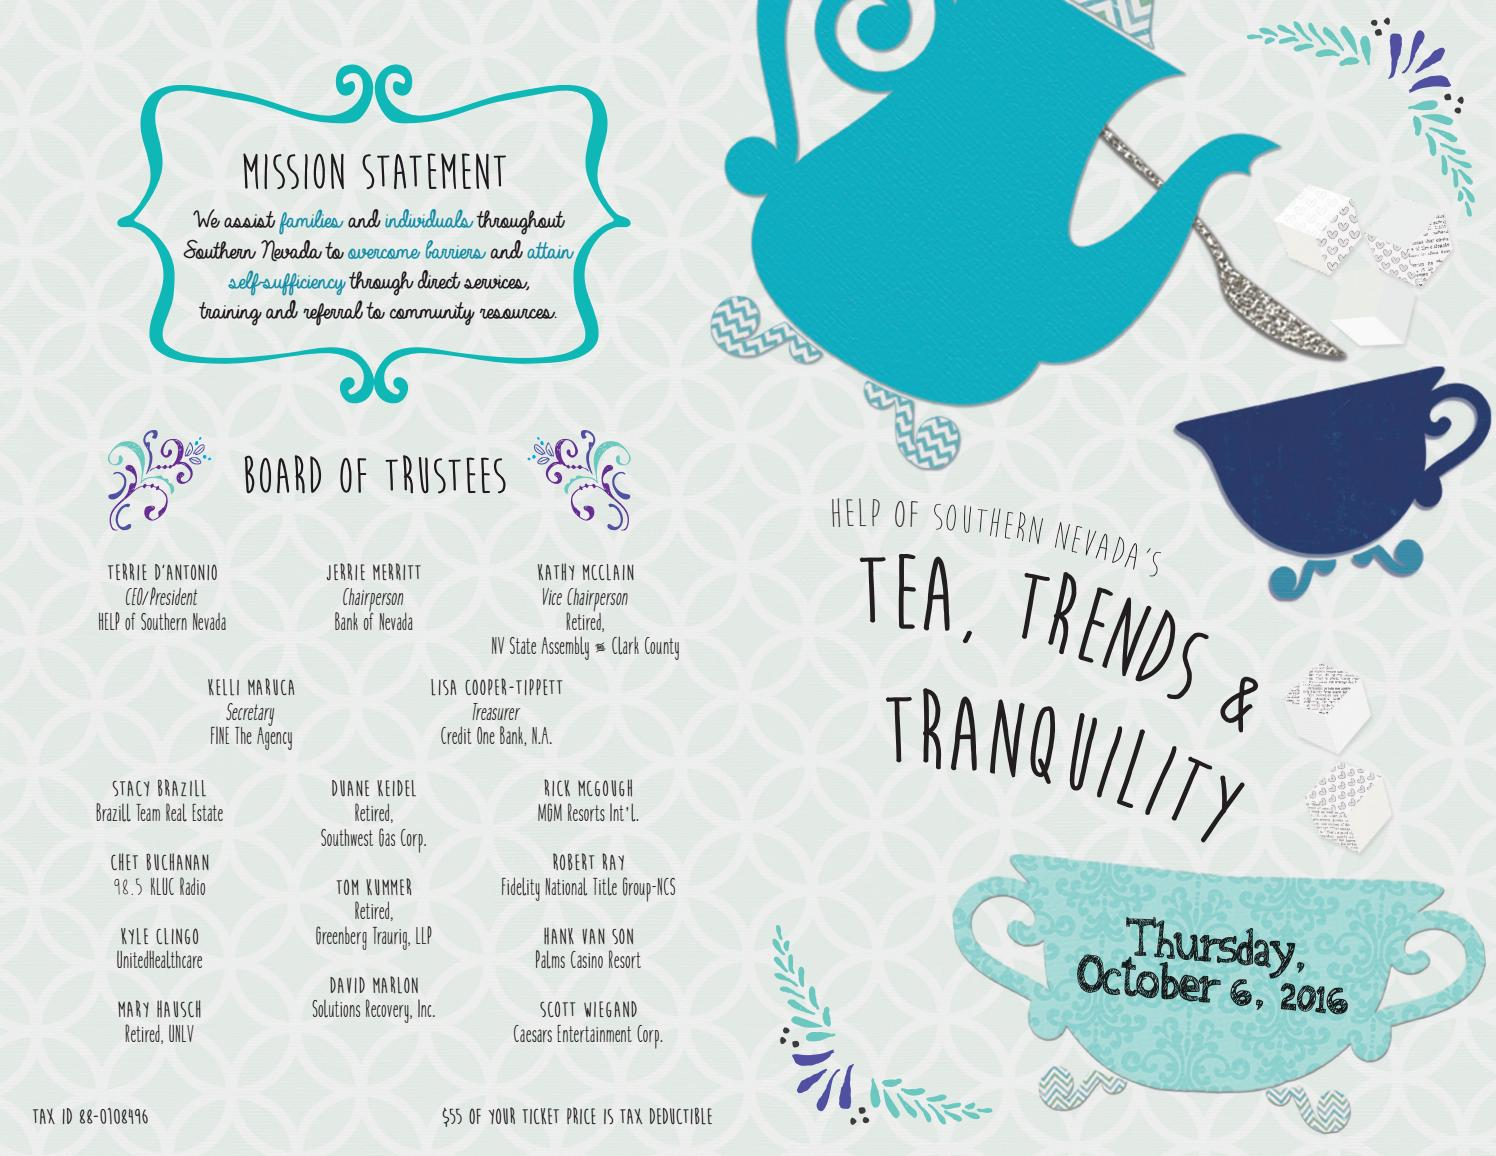 help of southern nevada 2016 tea, trends and tranquility program